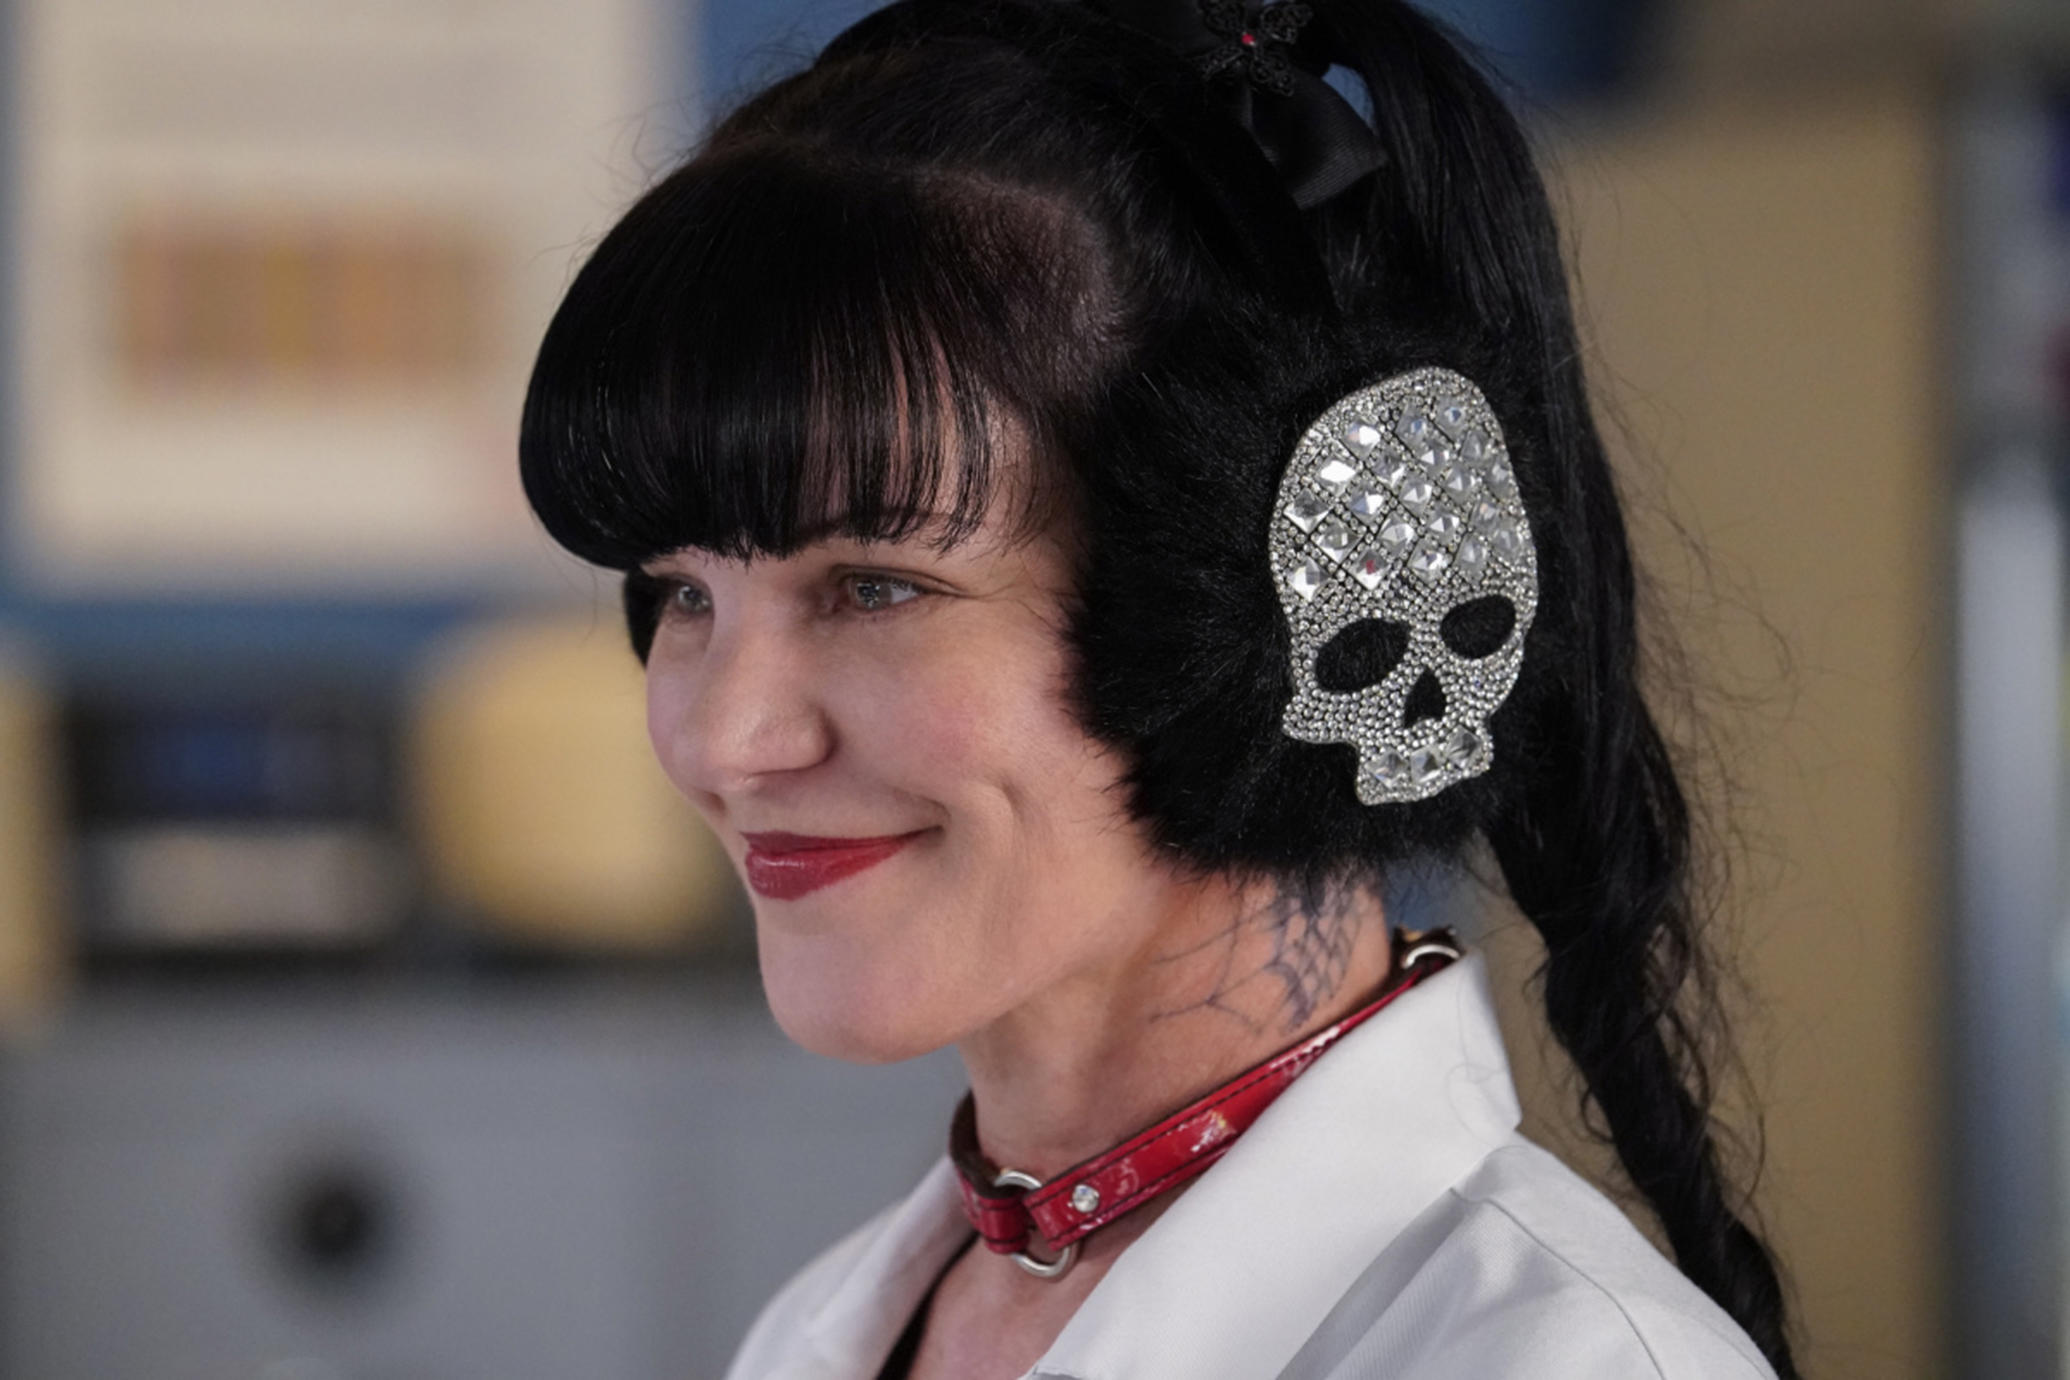 NCIS': The Real Reason Pauley Perrette Left the Show After